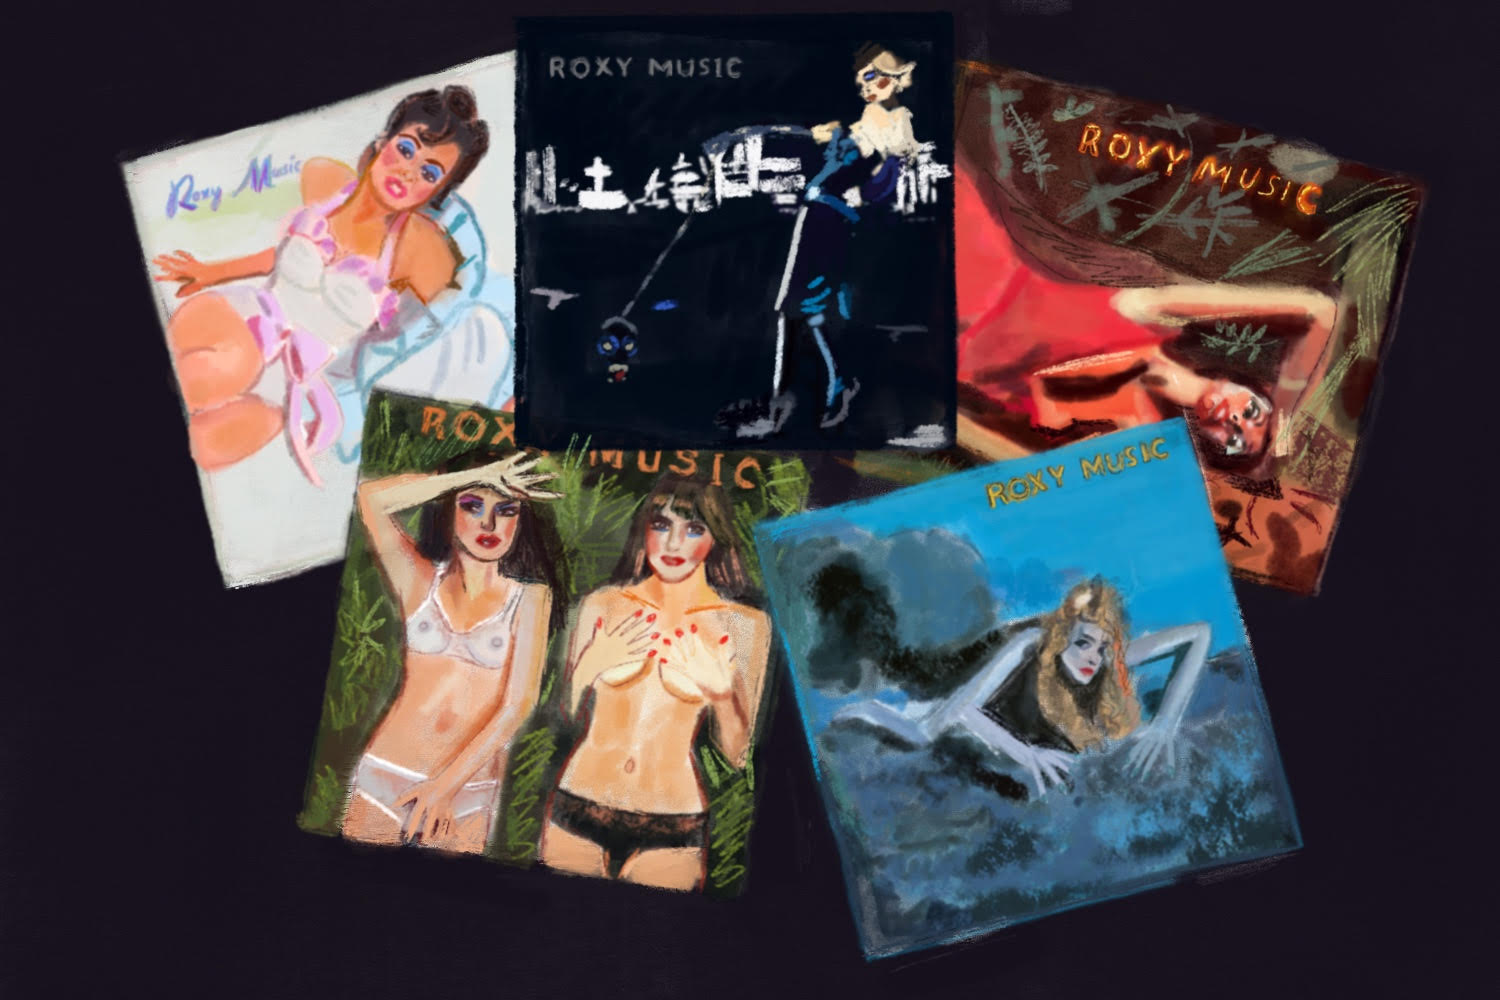 Roxy Music s/t, Stranded, Country Life and other 1970s album covers